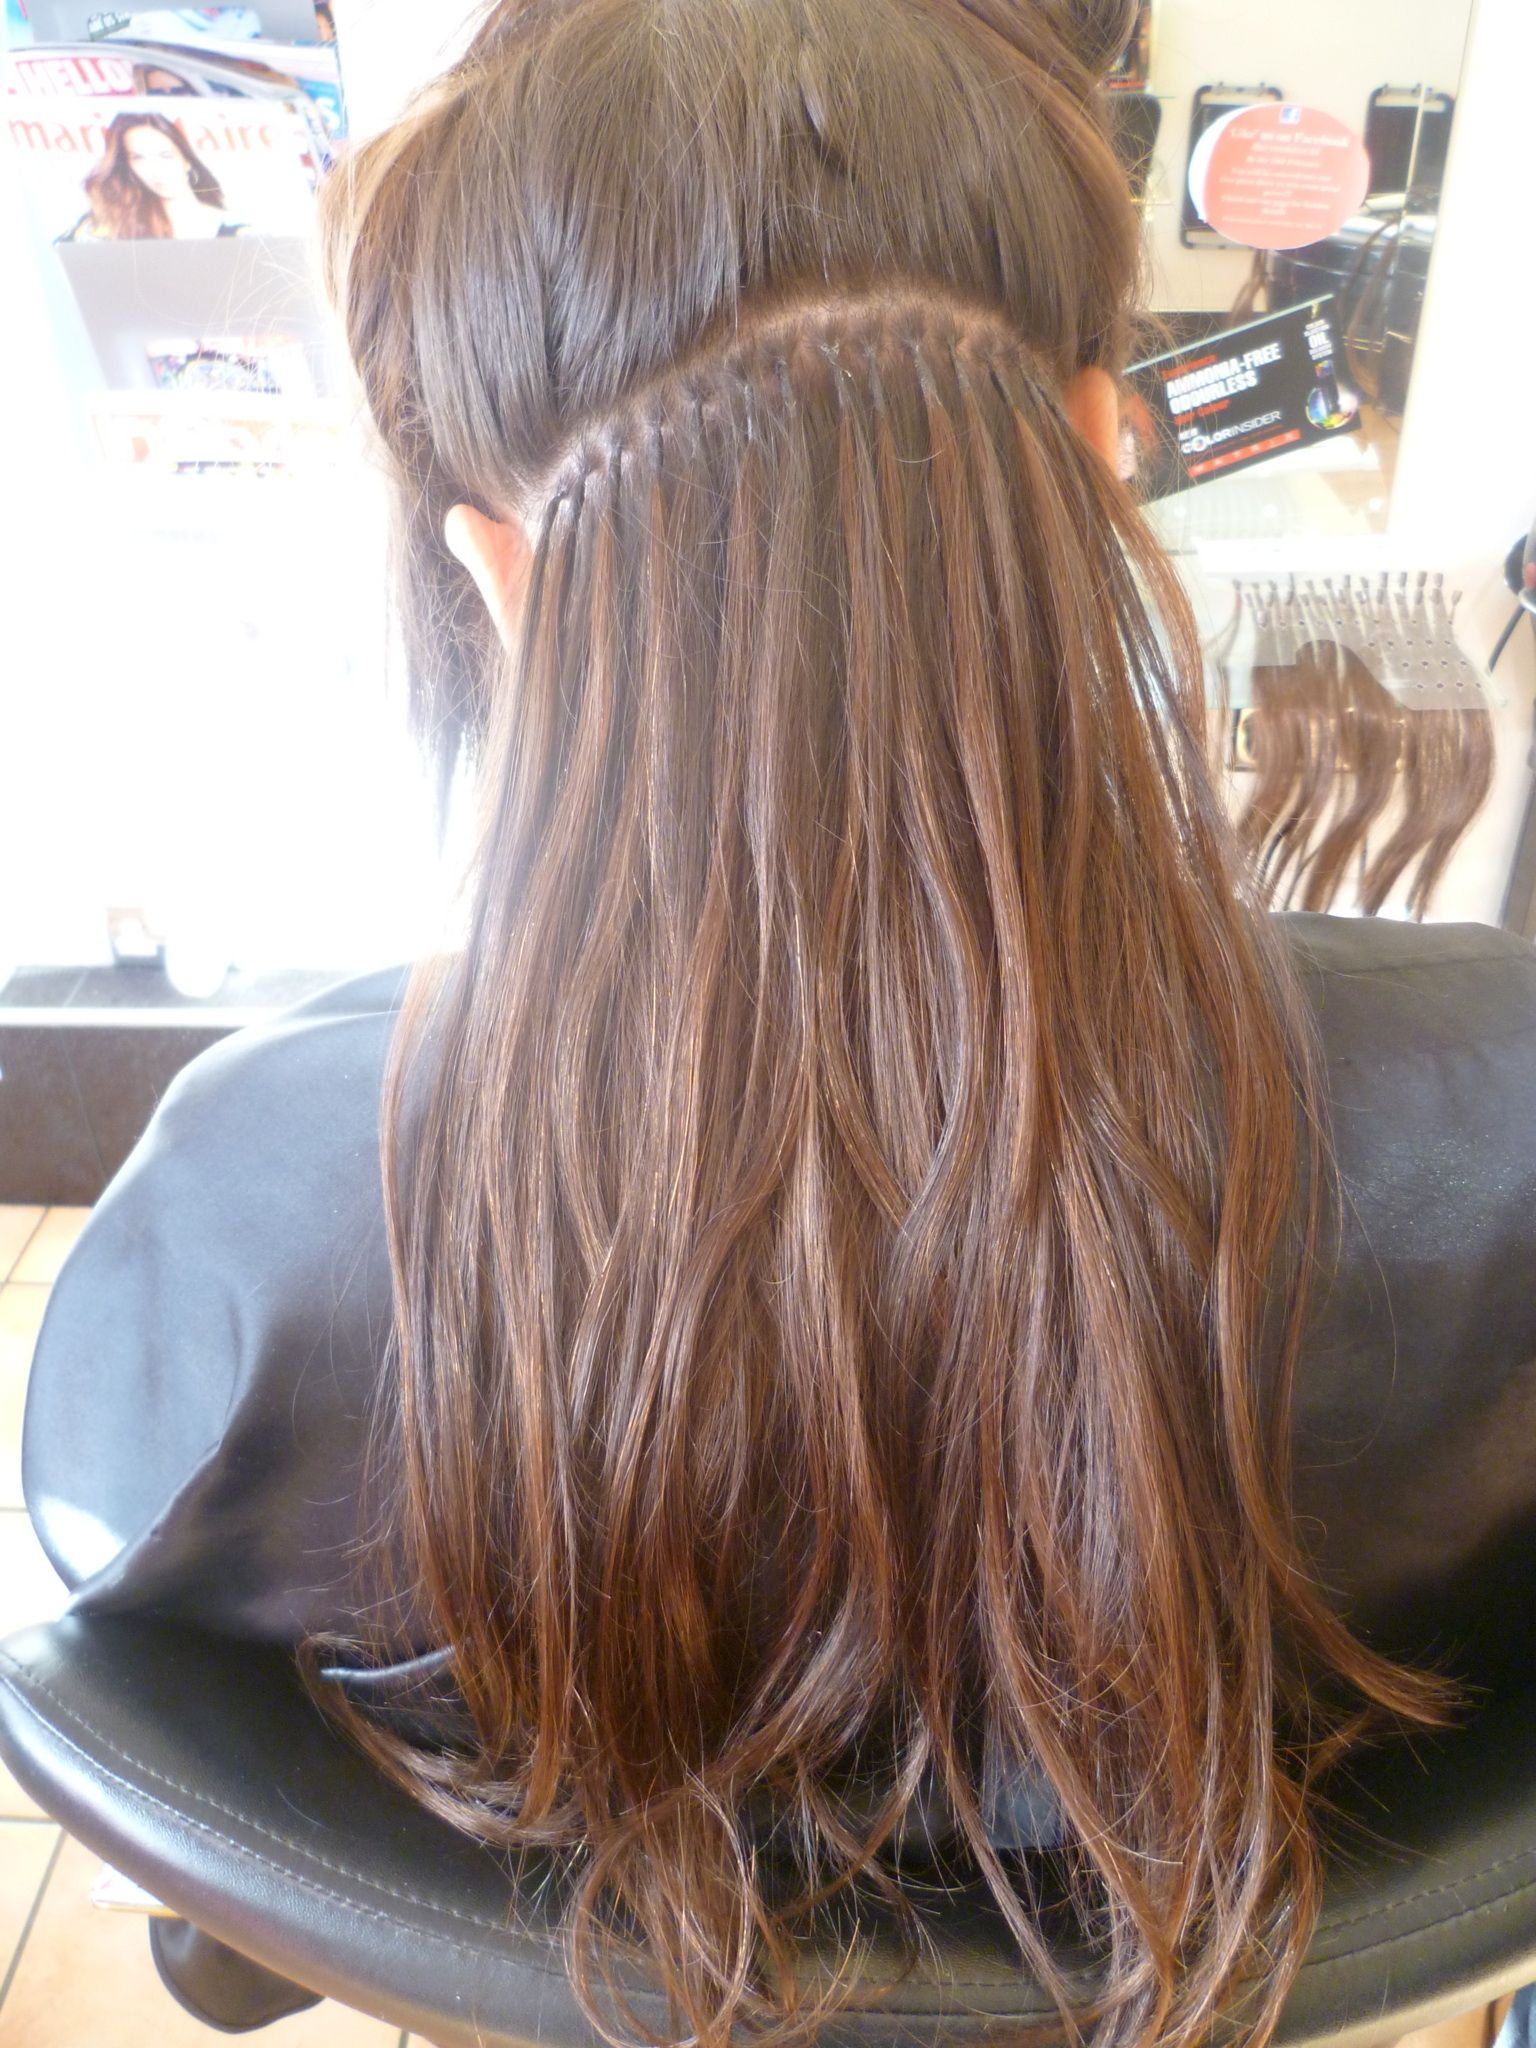 Application Of Balmain Fill In Extensions Balmain Hair Extensions